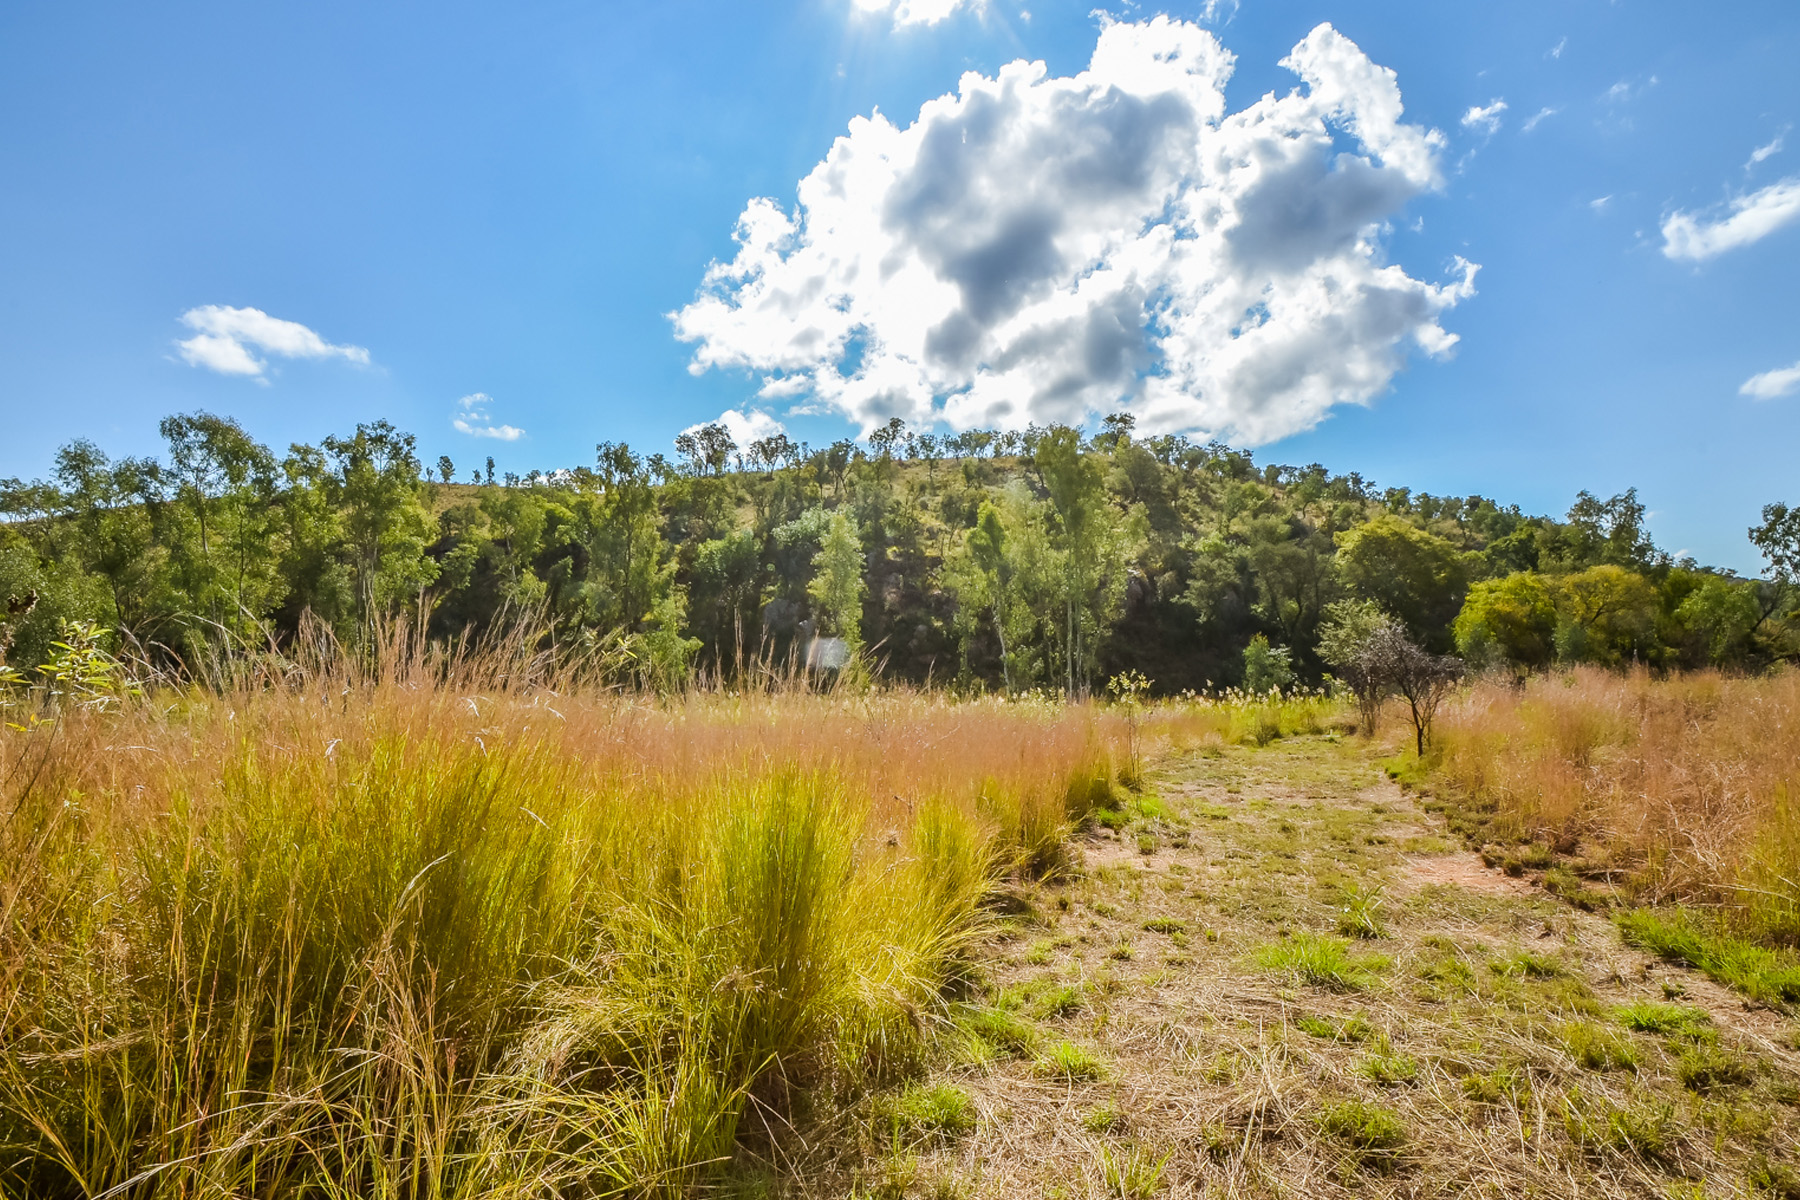 Land for Sale at Hot Spring for sale in Mookghopong Other South Africa, Other Areas In South Africa 0560 South Africa